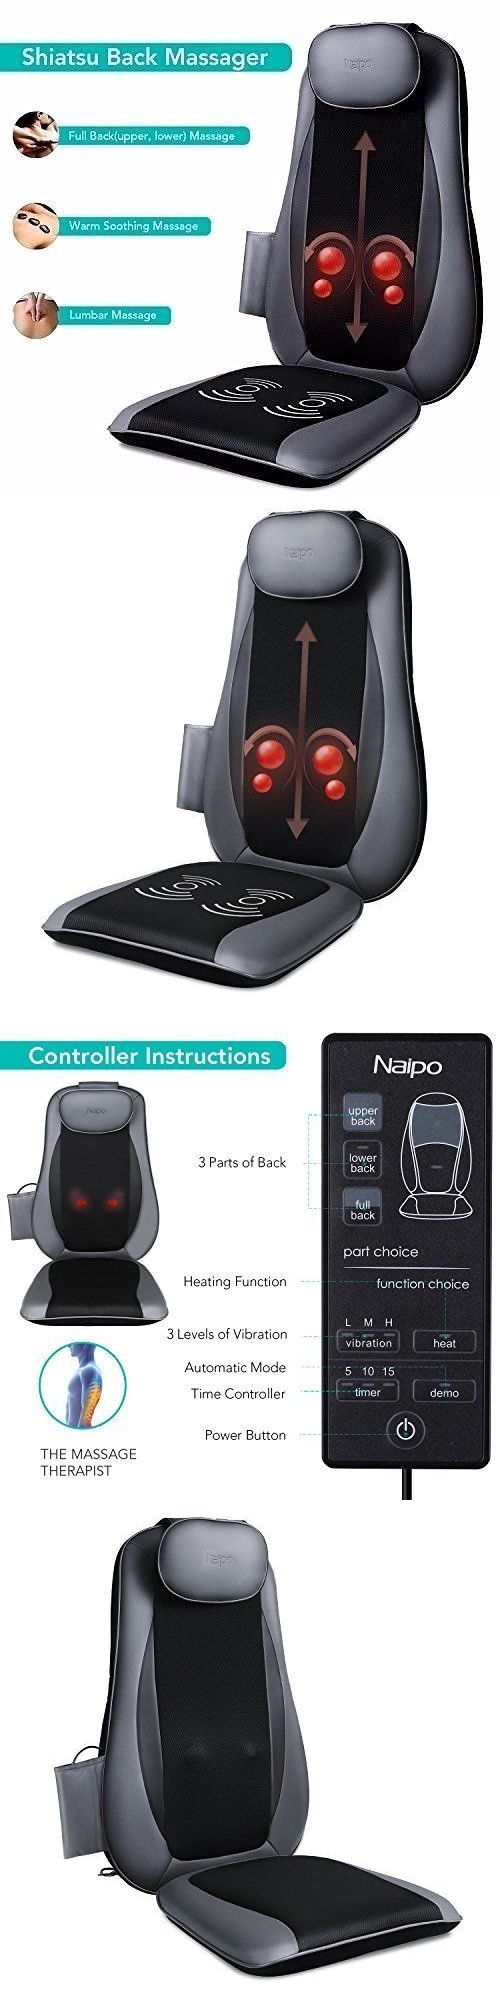 Electric Massage Chairs: Seat Massage Cushion Professional Shiatsu And Deep Kneading With Heat And Vibration -> BUY IT NOW ONLY: $184.68 on eBay!